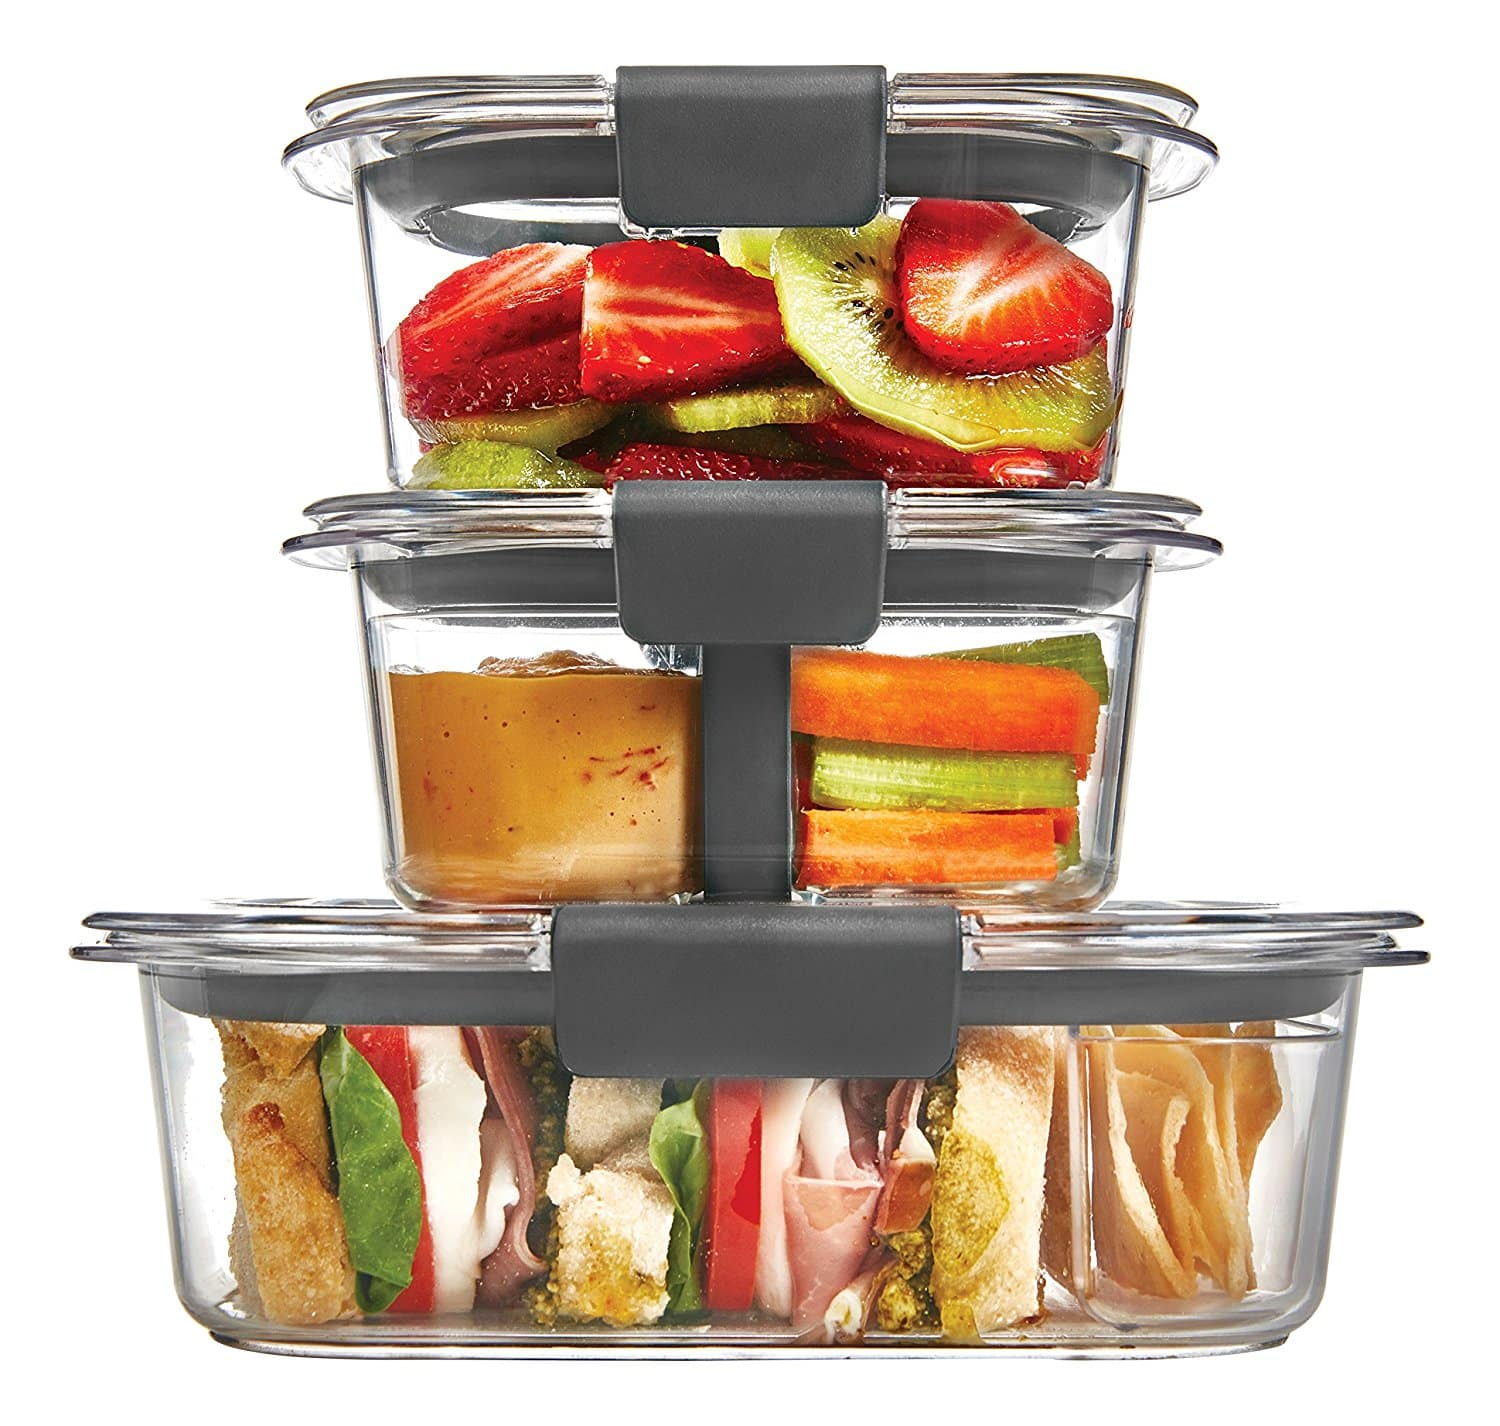 10 Piece Rubbermaid Brilliance Food Storage Containers